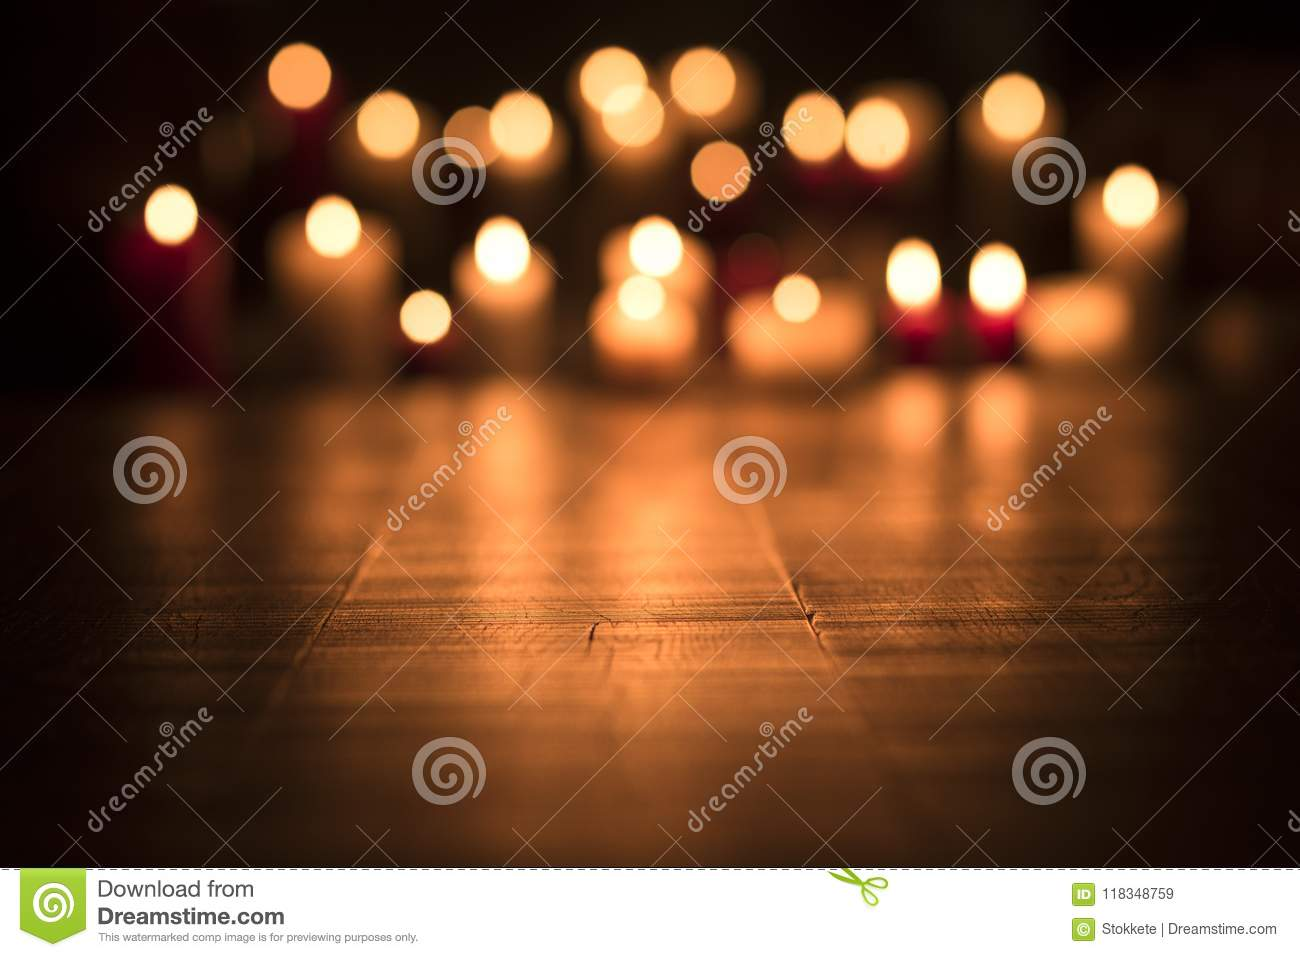 Lit candles burning in the Church